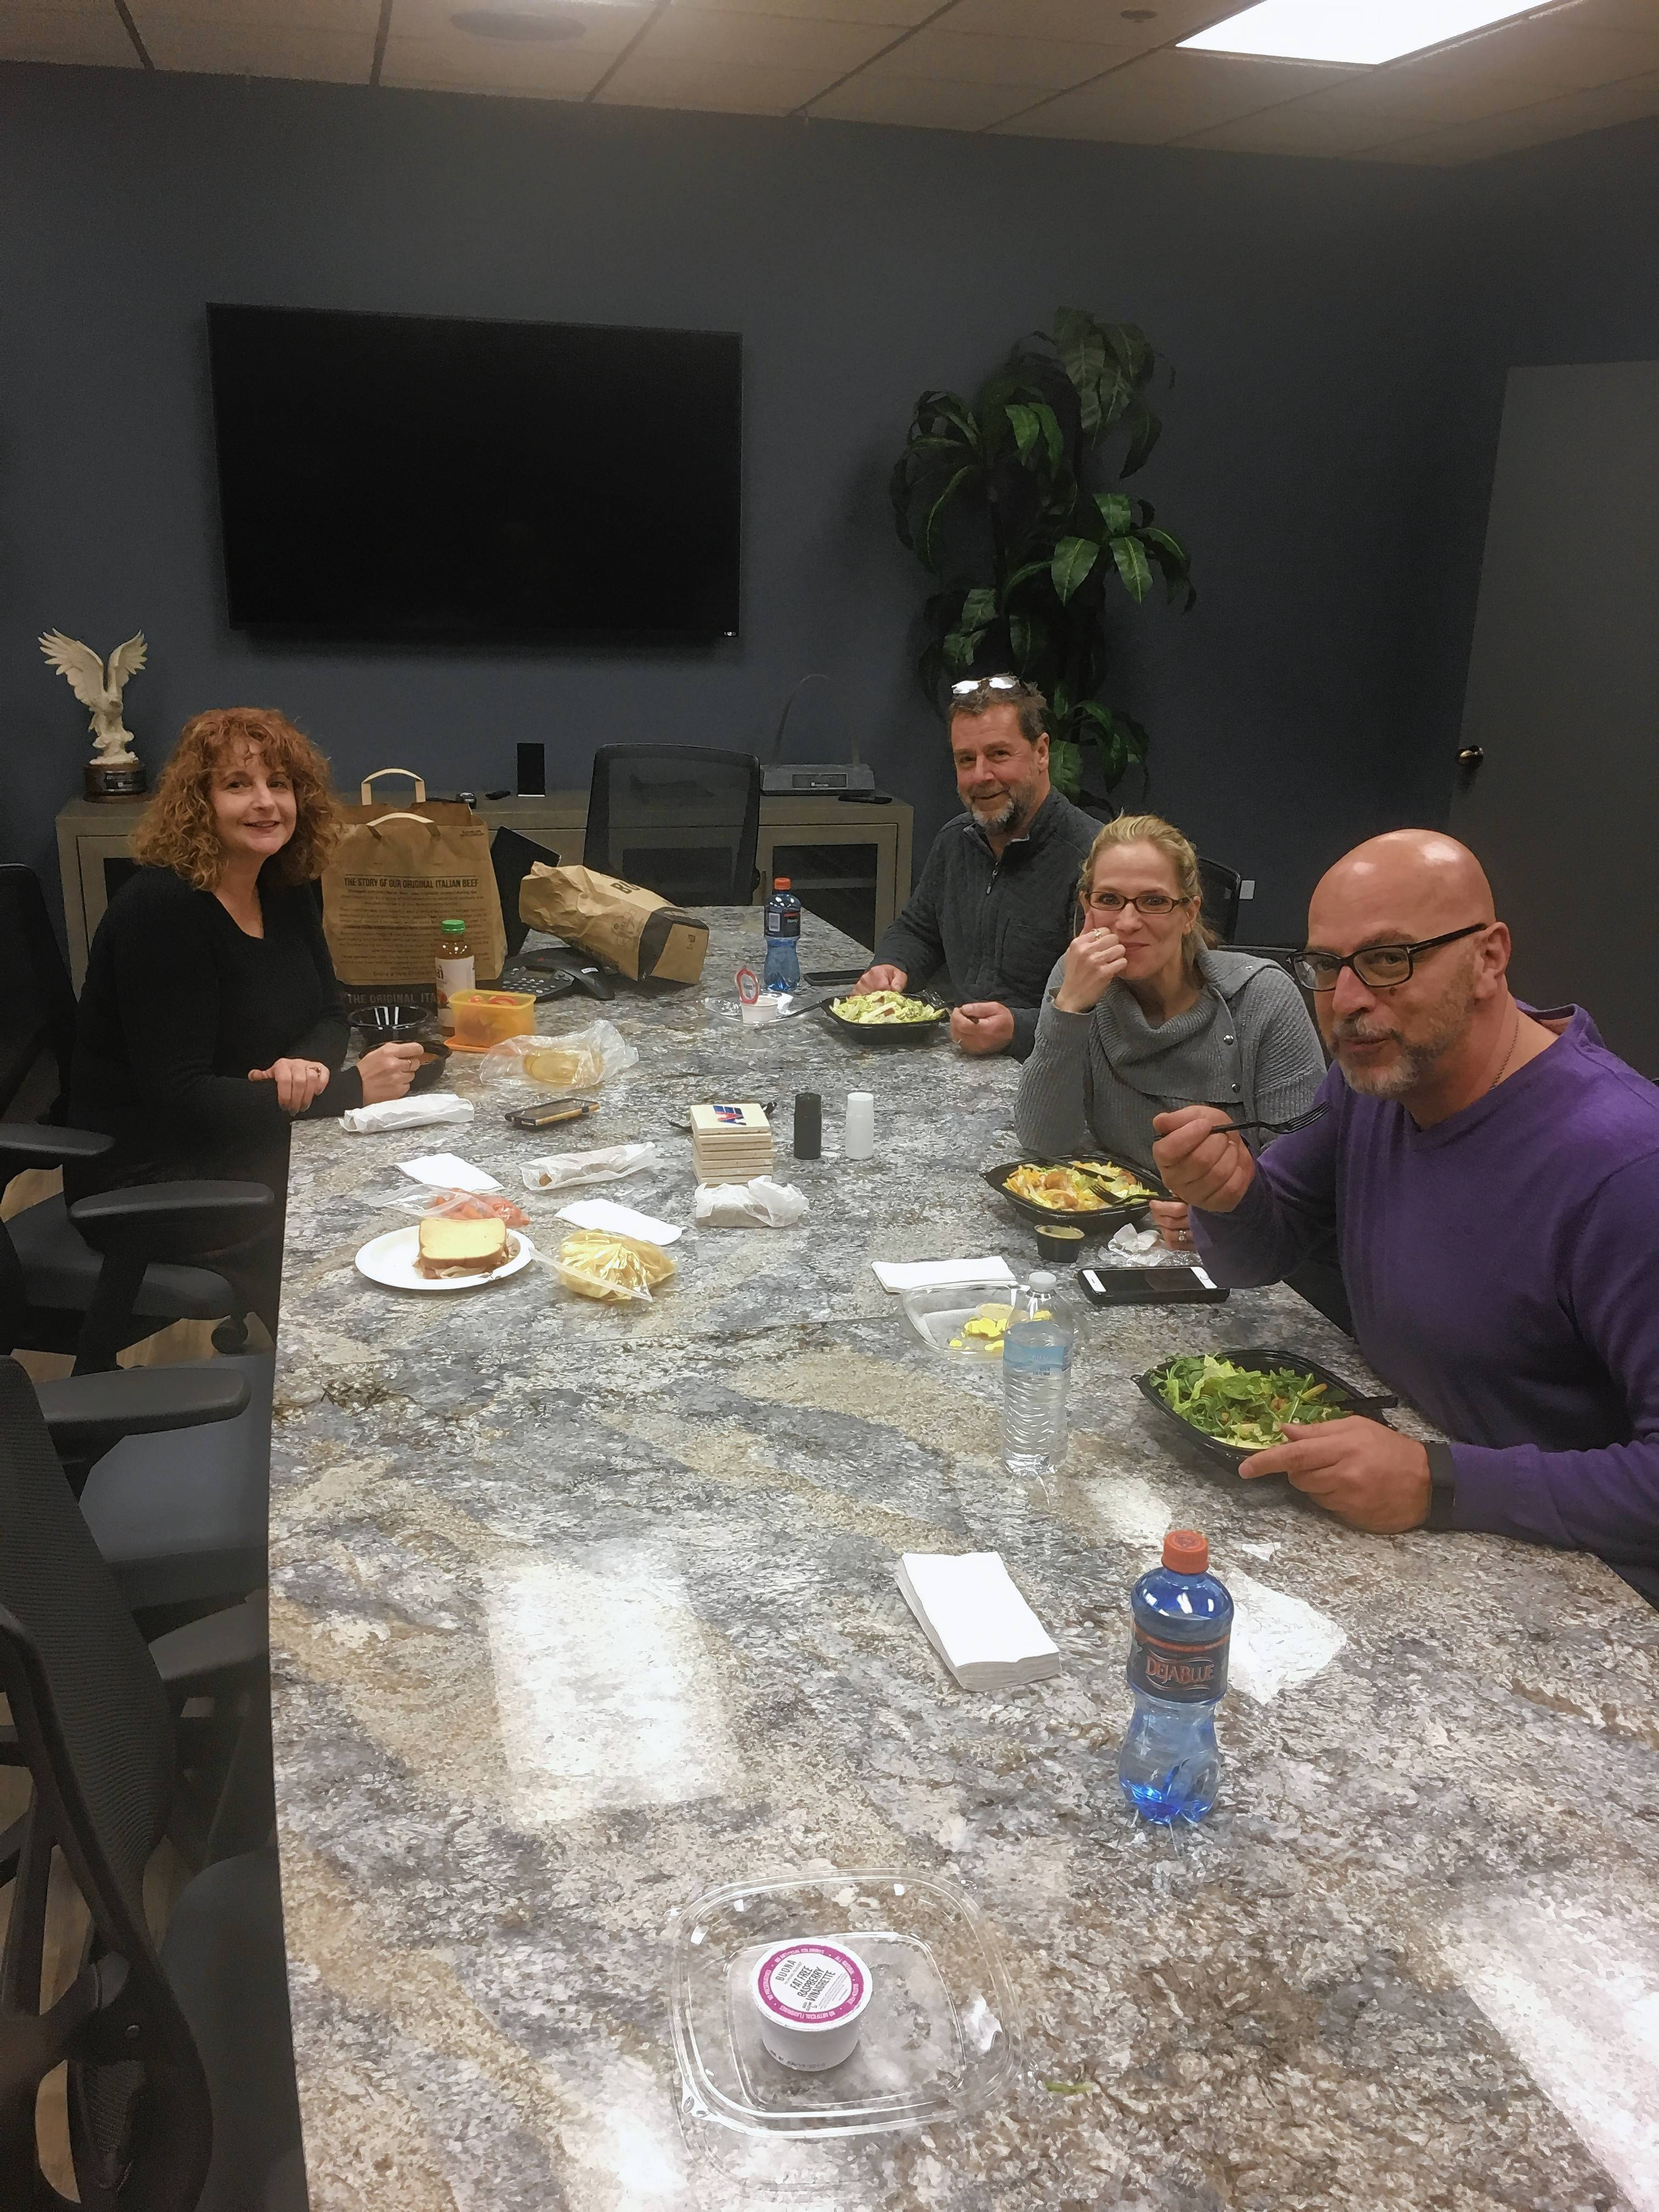 AVS Companies' teams 4 Queens and a Joker and Lotsa Guts have switched from eating fast food for lunch to having healthy, home cooked meals and salads. From left to right, Eileen Schreiner, Vince Gumma, Michelle Lopez and Tony Shamma